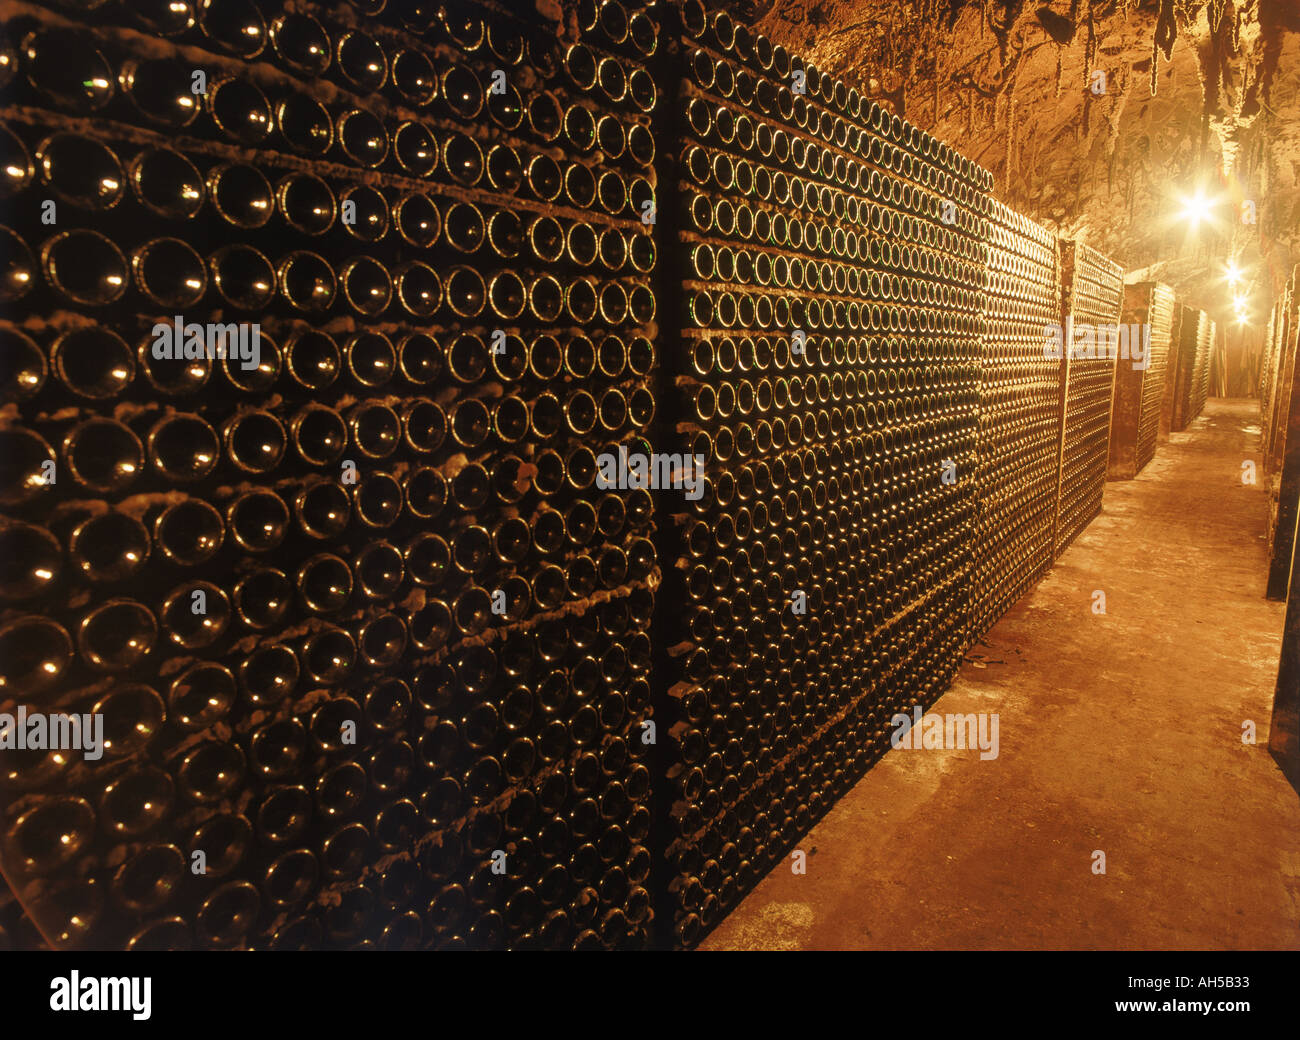 Bottles of aging wine at Cune Bodega in Rioja region of Spain - Stock Image